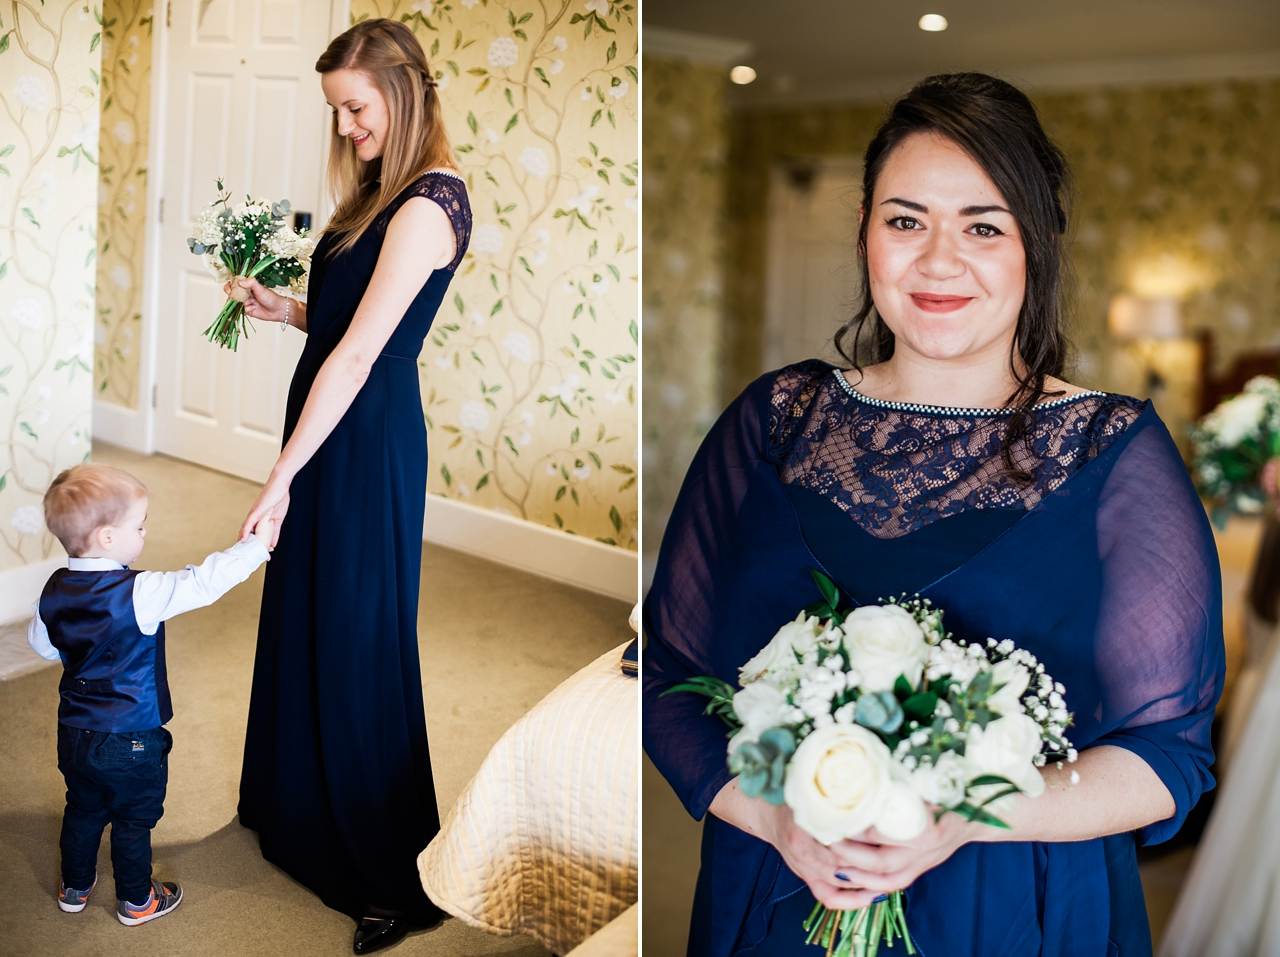 Beautiful candid photos of bridesmaids in navy blue